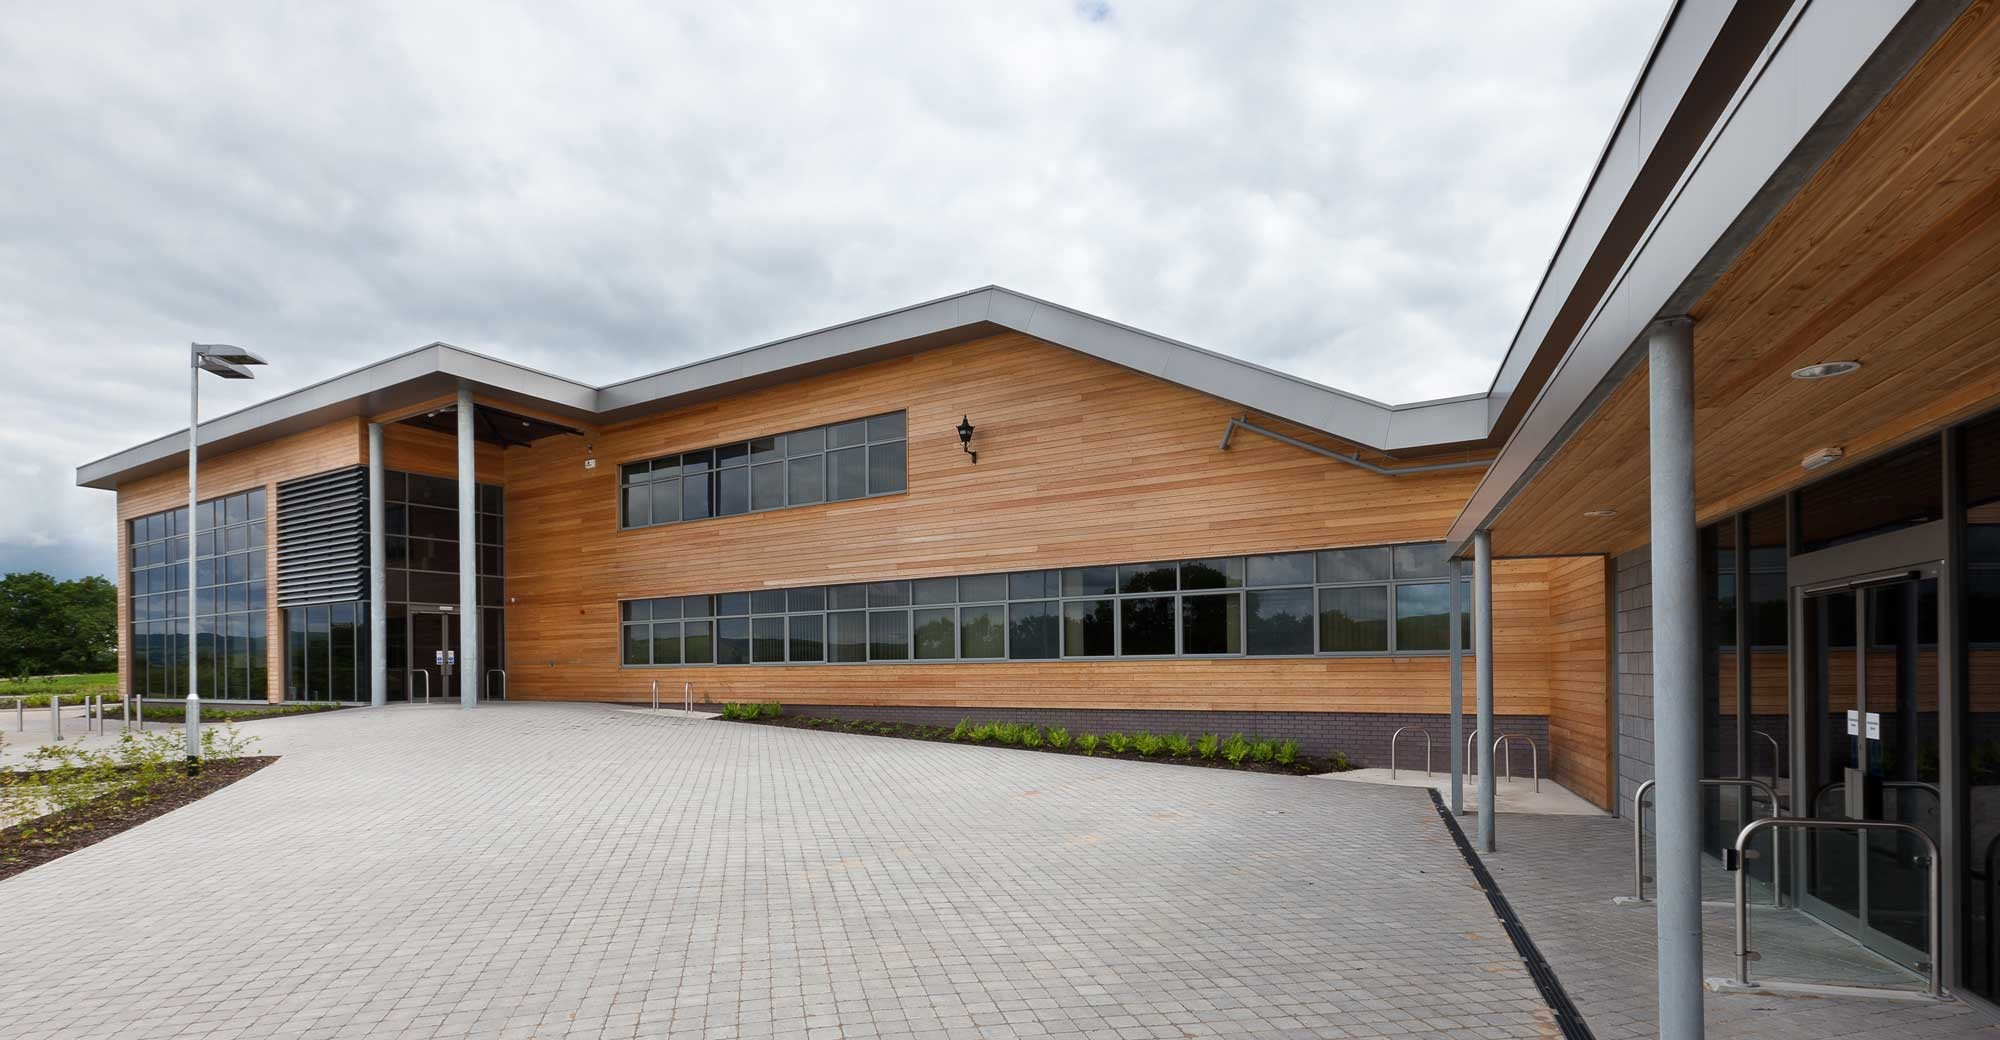 Composite Aluminium Coping System From Marley Alutec